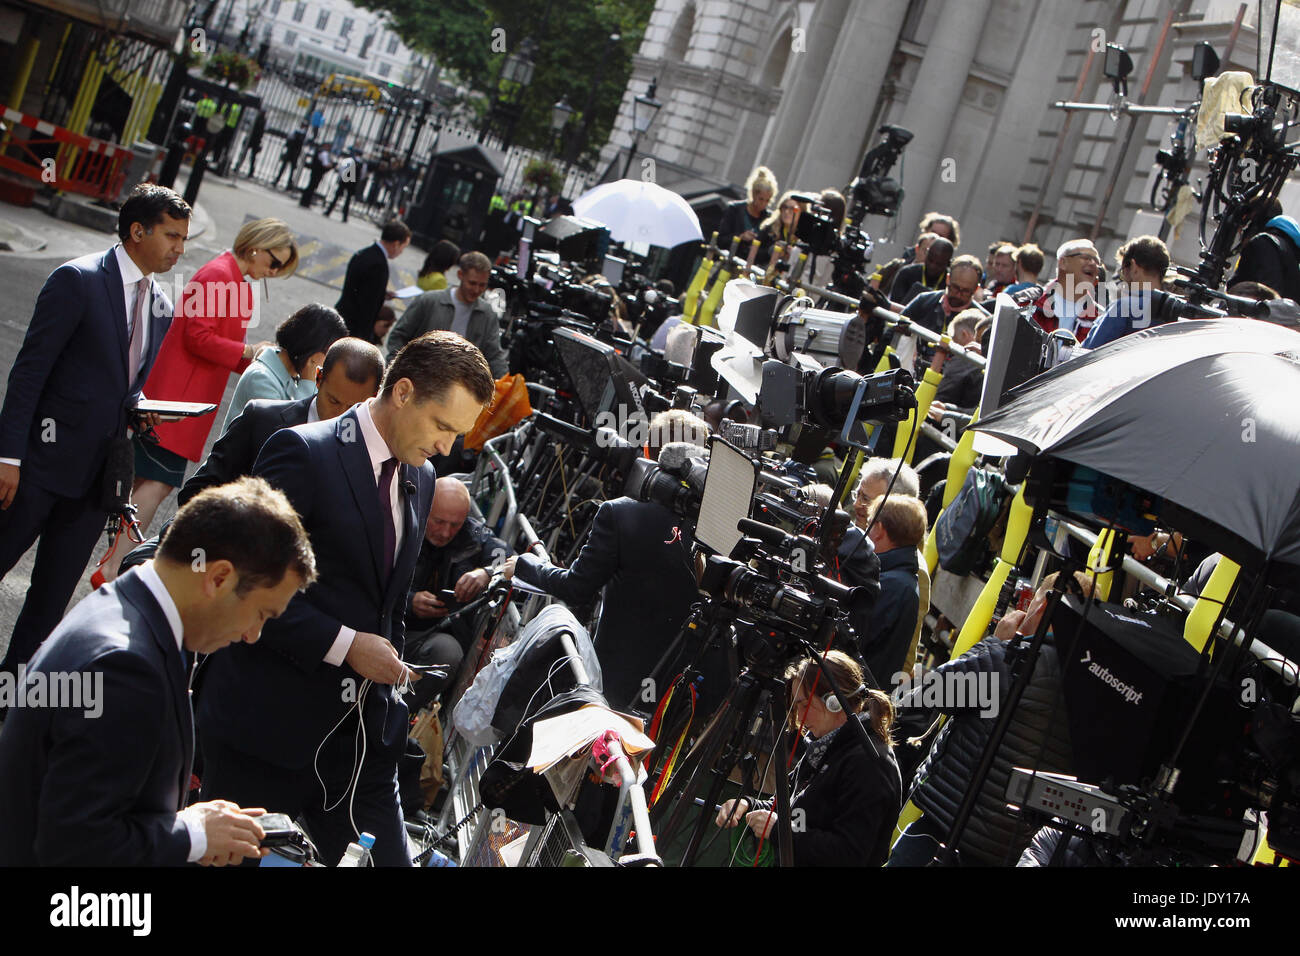 Politics, Media, Communications, Press hoards on gantry in Downing Street during 2017 General Election. - Stock Image